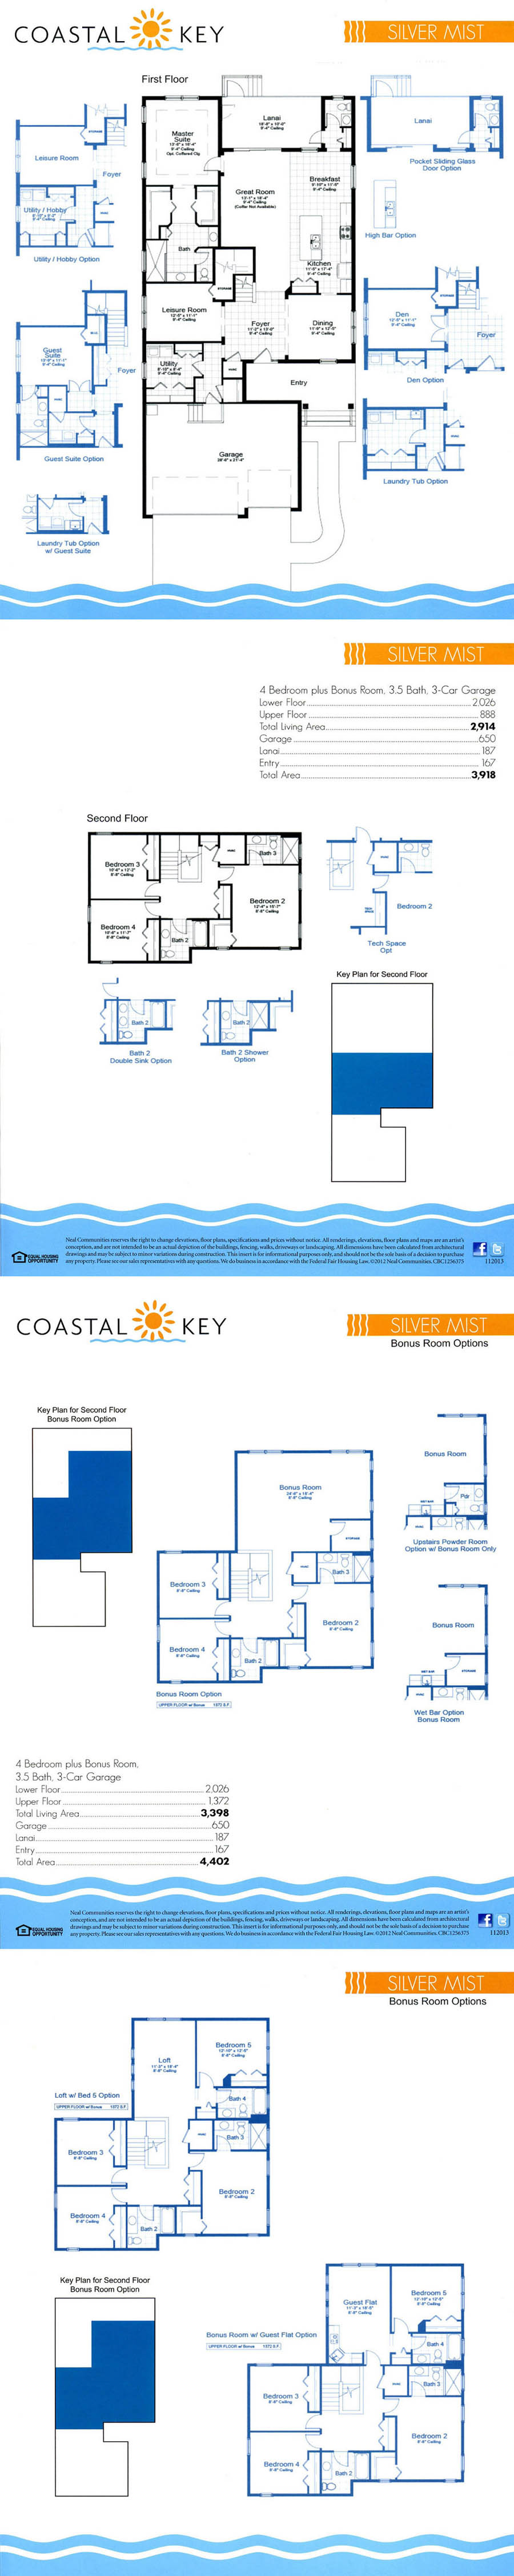 coastal key floor plans montecito ii beach house plan alp 08al chatham design